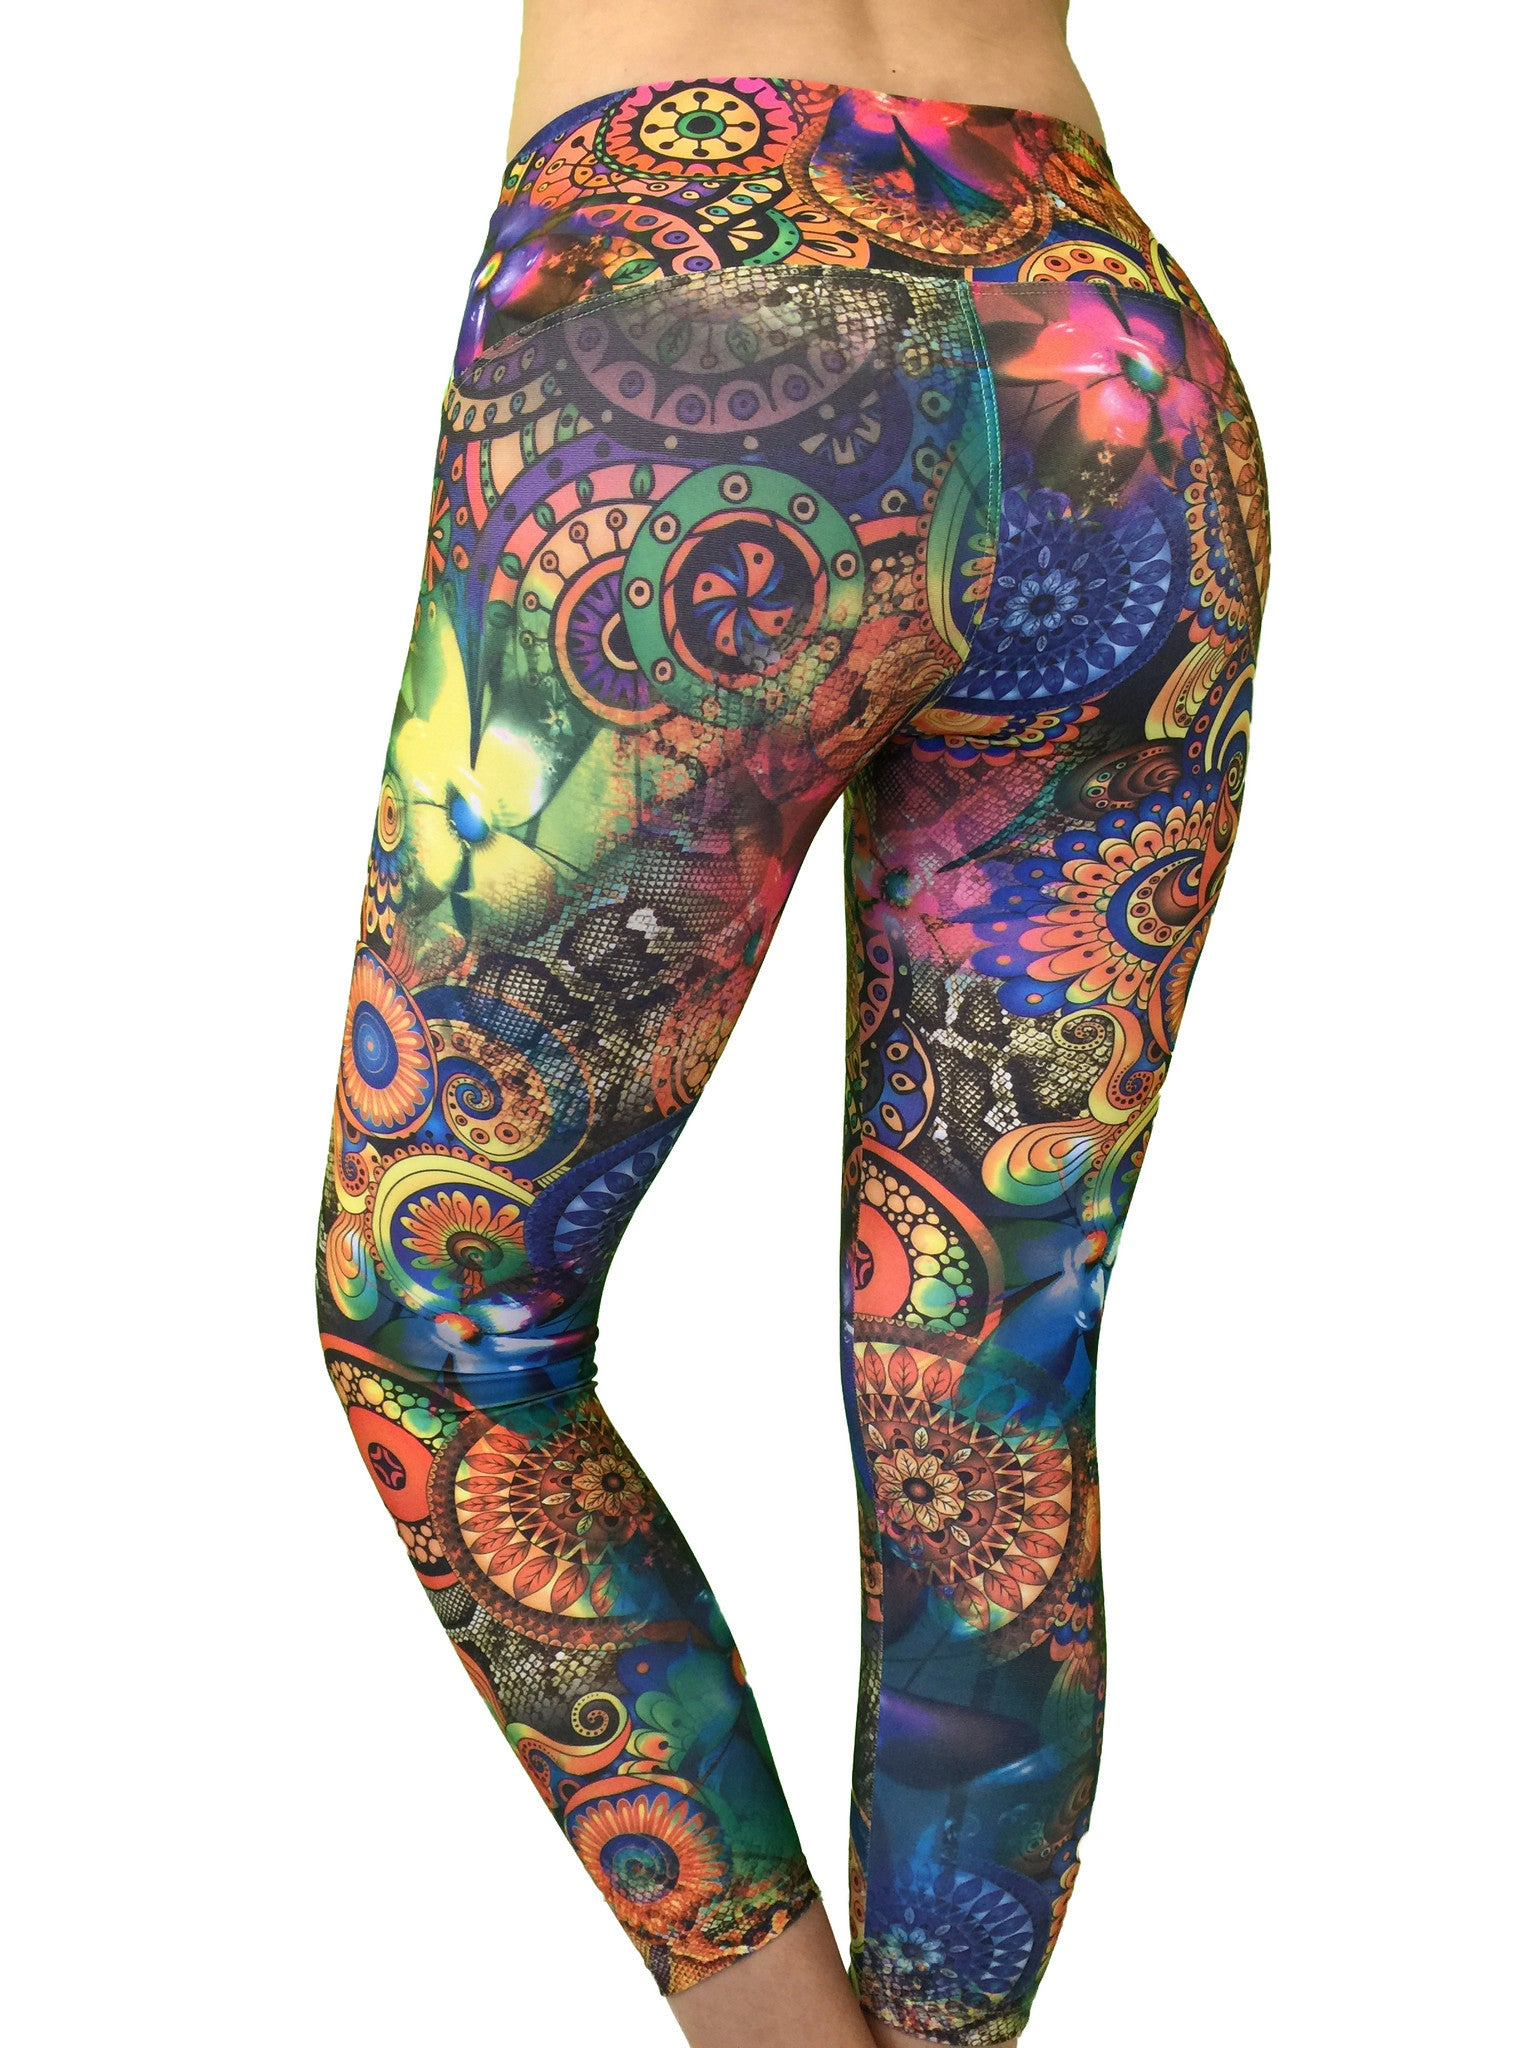 Essence - Leggings - Butterfly Armor